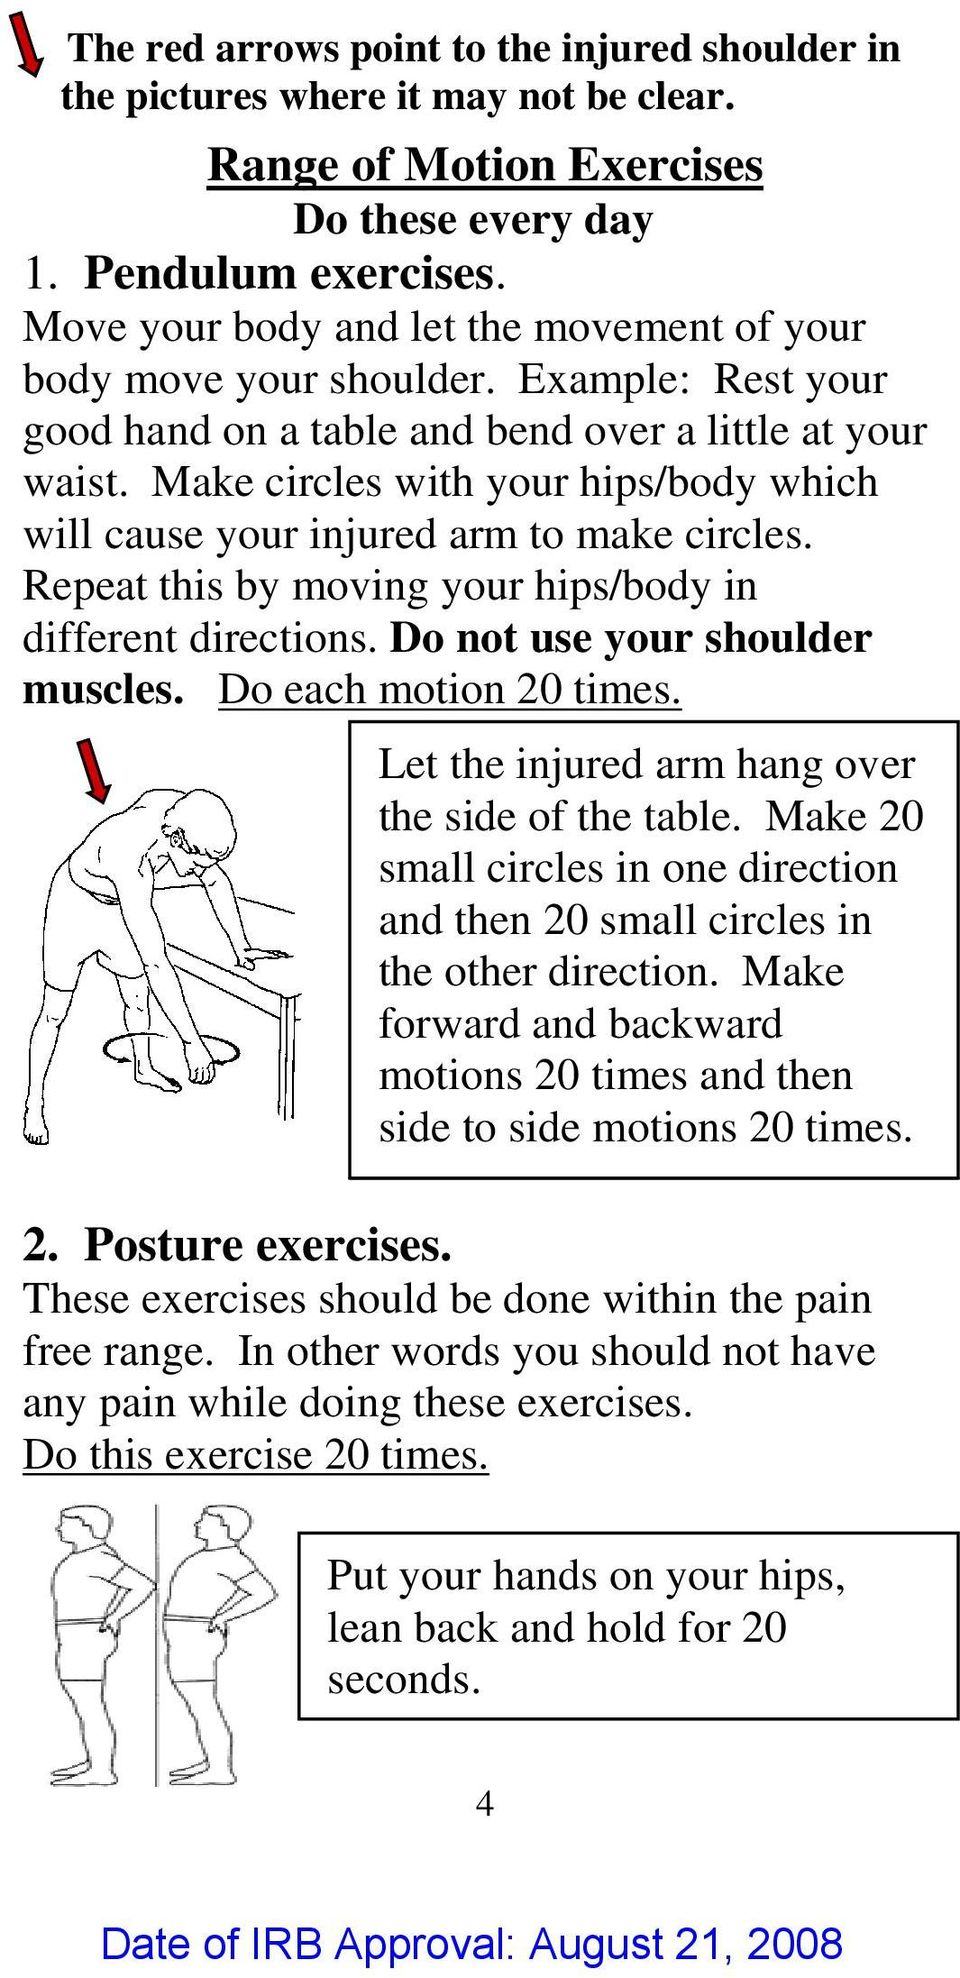 Make circles with your hips/body which will cause your injured arm to make circles. Repeat this by moving your hips/body in different directions. Do not use your shoulder muscles.